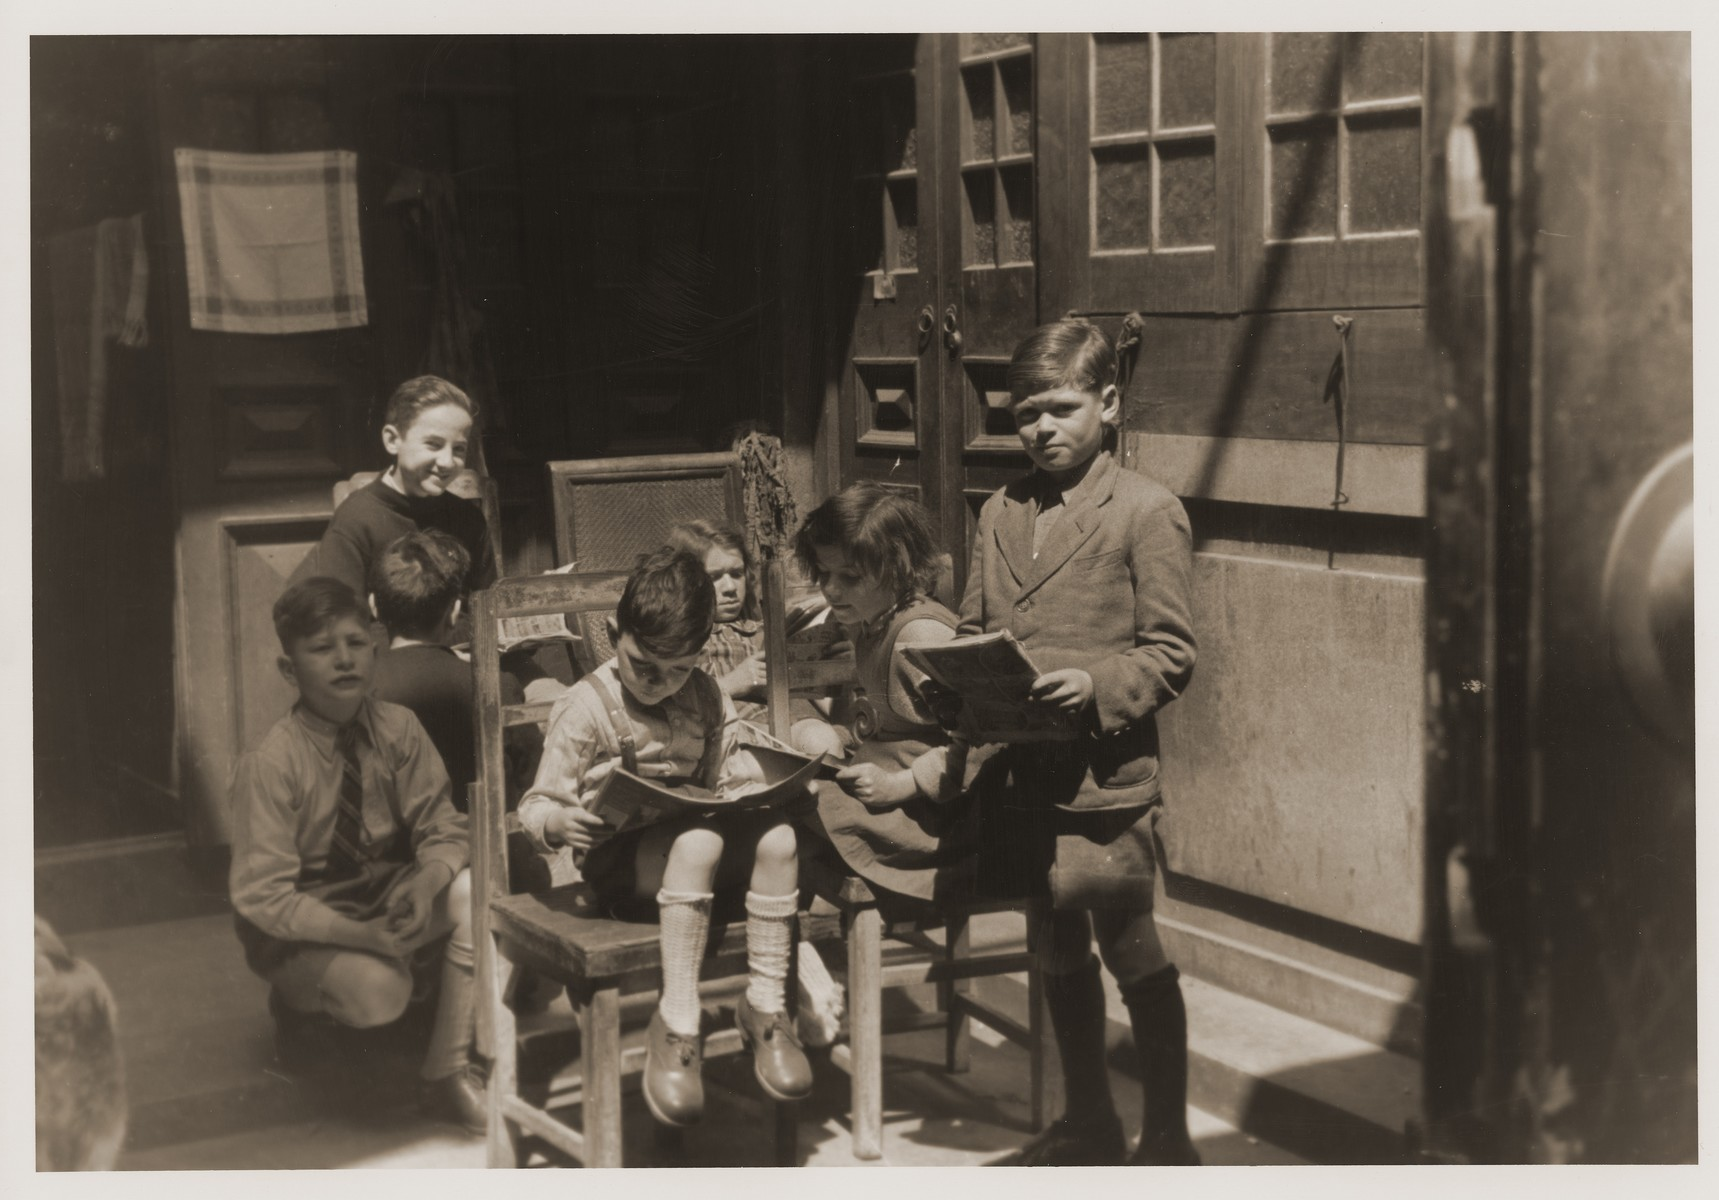 Jewish refugee children in a home on Tongshan Road.     Harry Fiedler is pictured reading in the chair.  Kneeling to his right is Werner Pendzl.